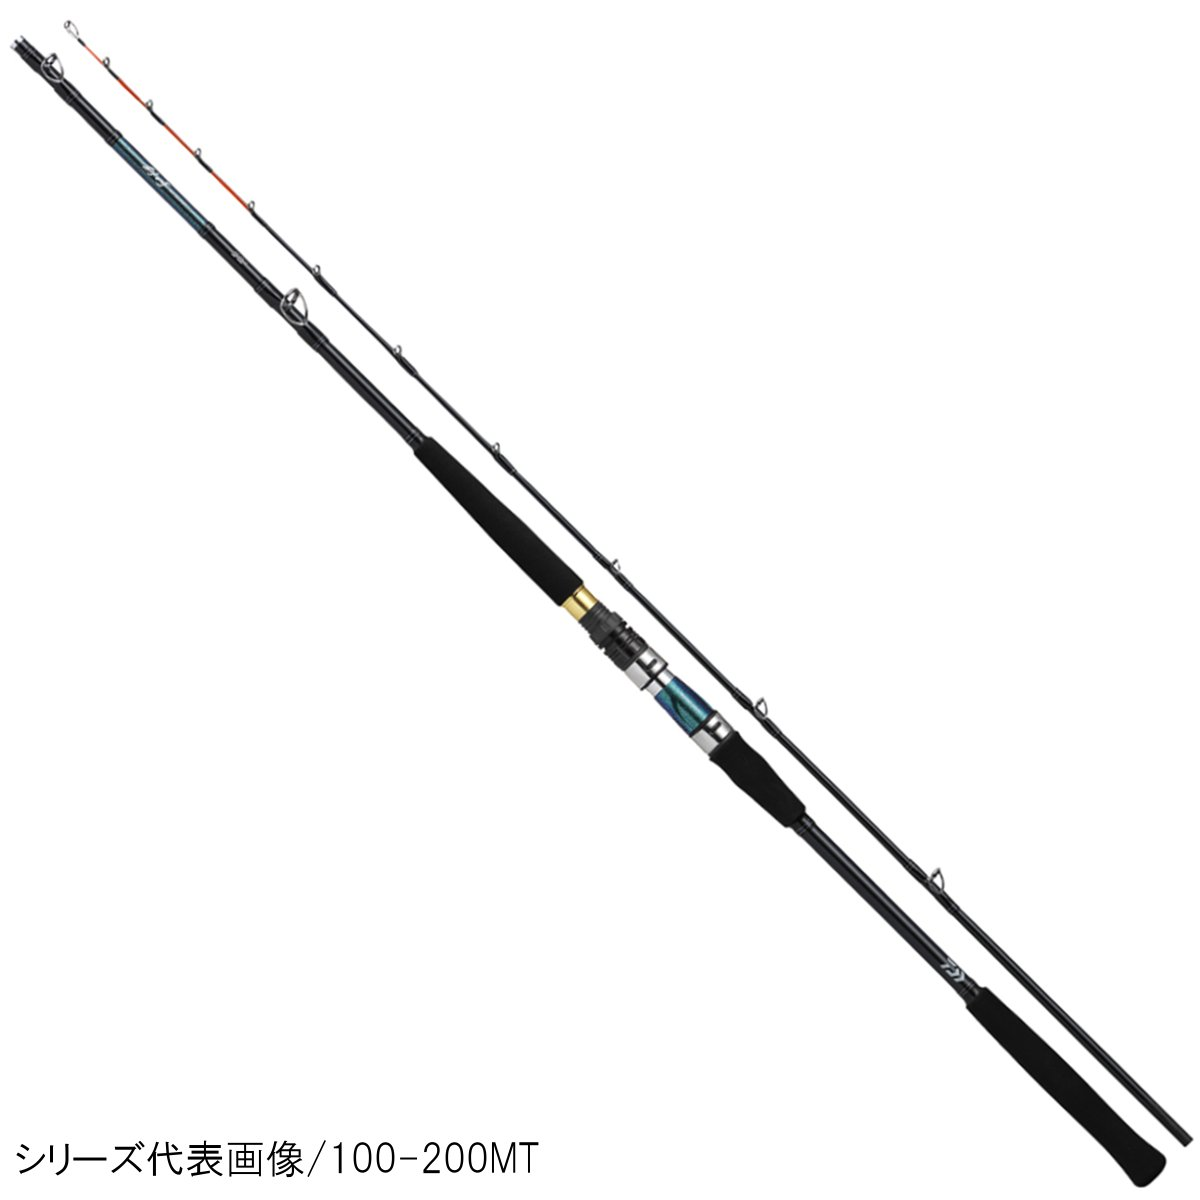 【10%OFF】 ダイワ ダイワ 剣崎 120-170MT MT MT 120-170MT, 白滝村:36a3cadf --- business.personalco5.dominiotemporario.com